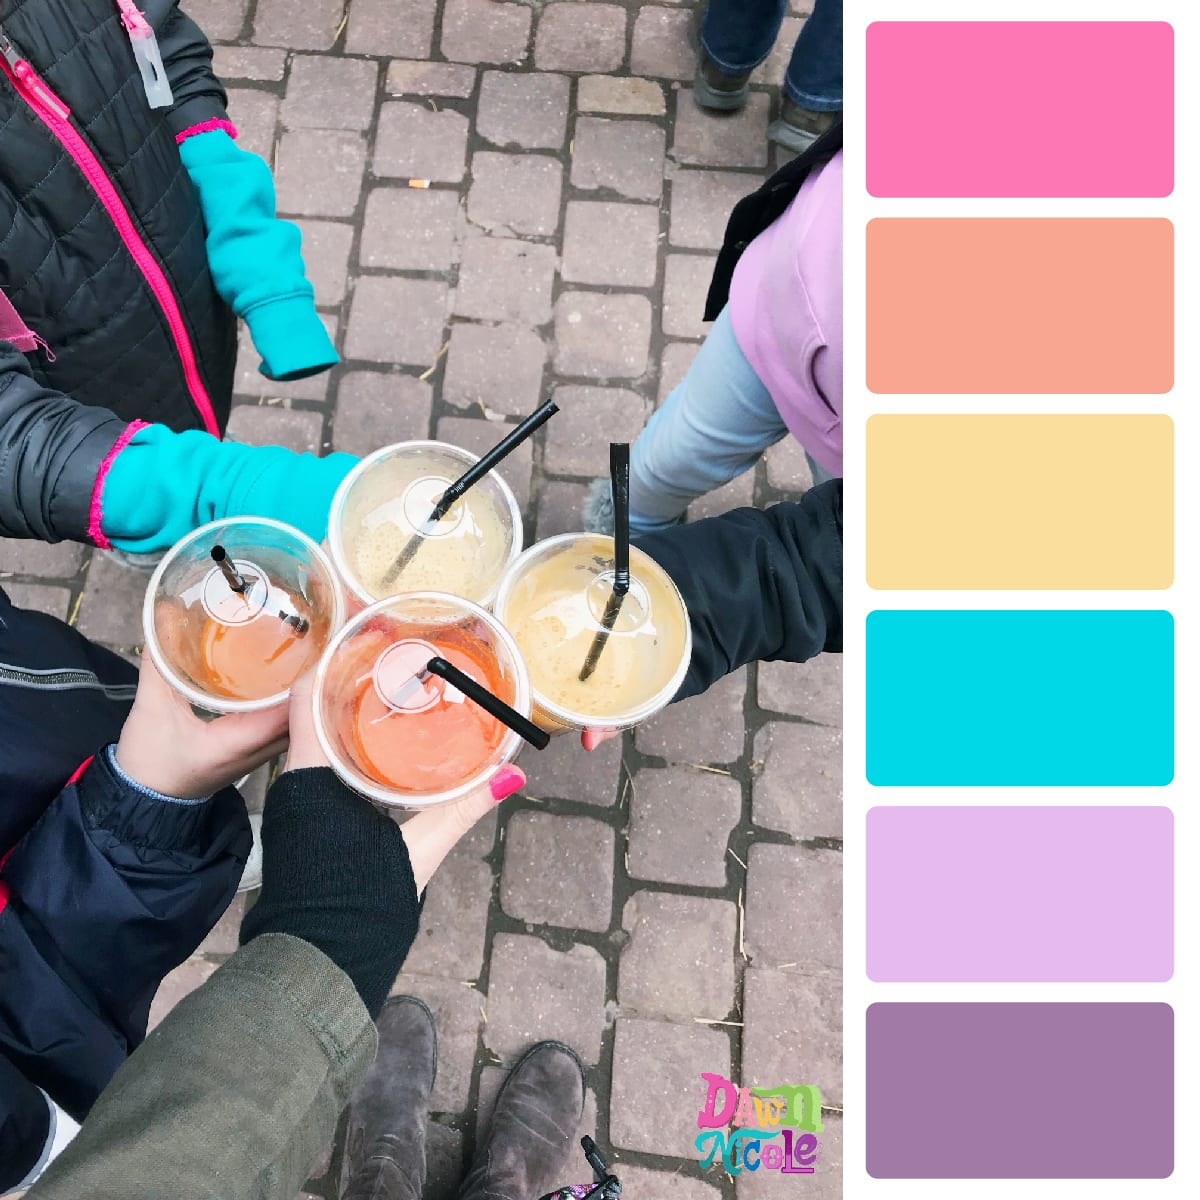 Colmar France in Color Palettes. I'm sharing my day trip to the Colmar Easter Market with you in the form of color palettes created from the photos I took in this beautiful French town.